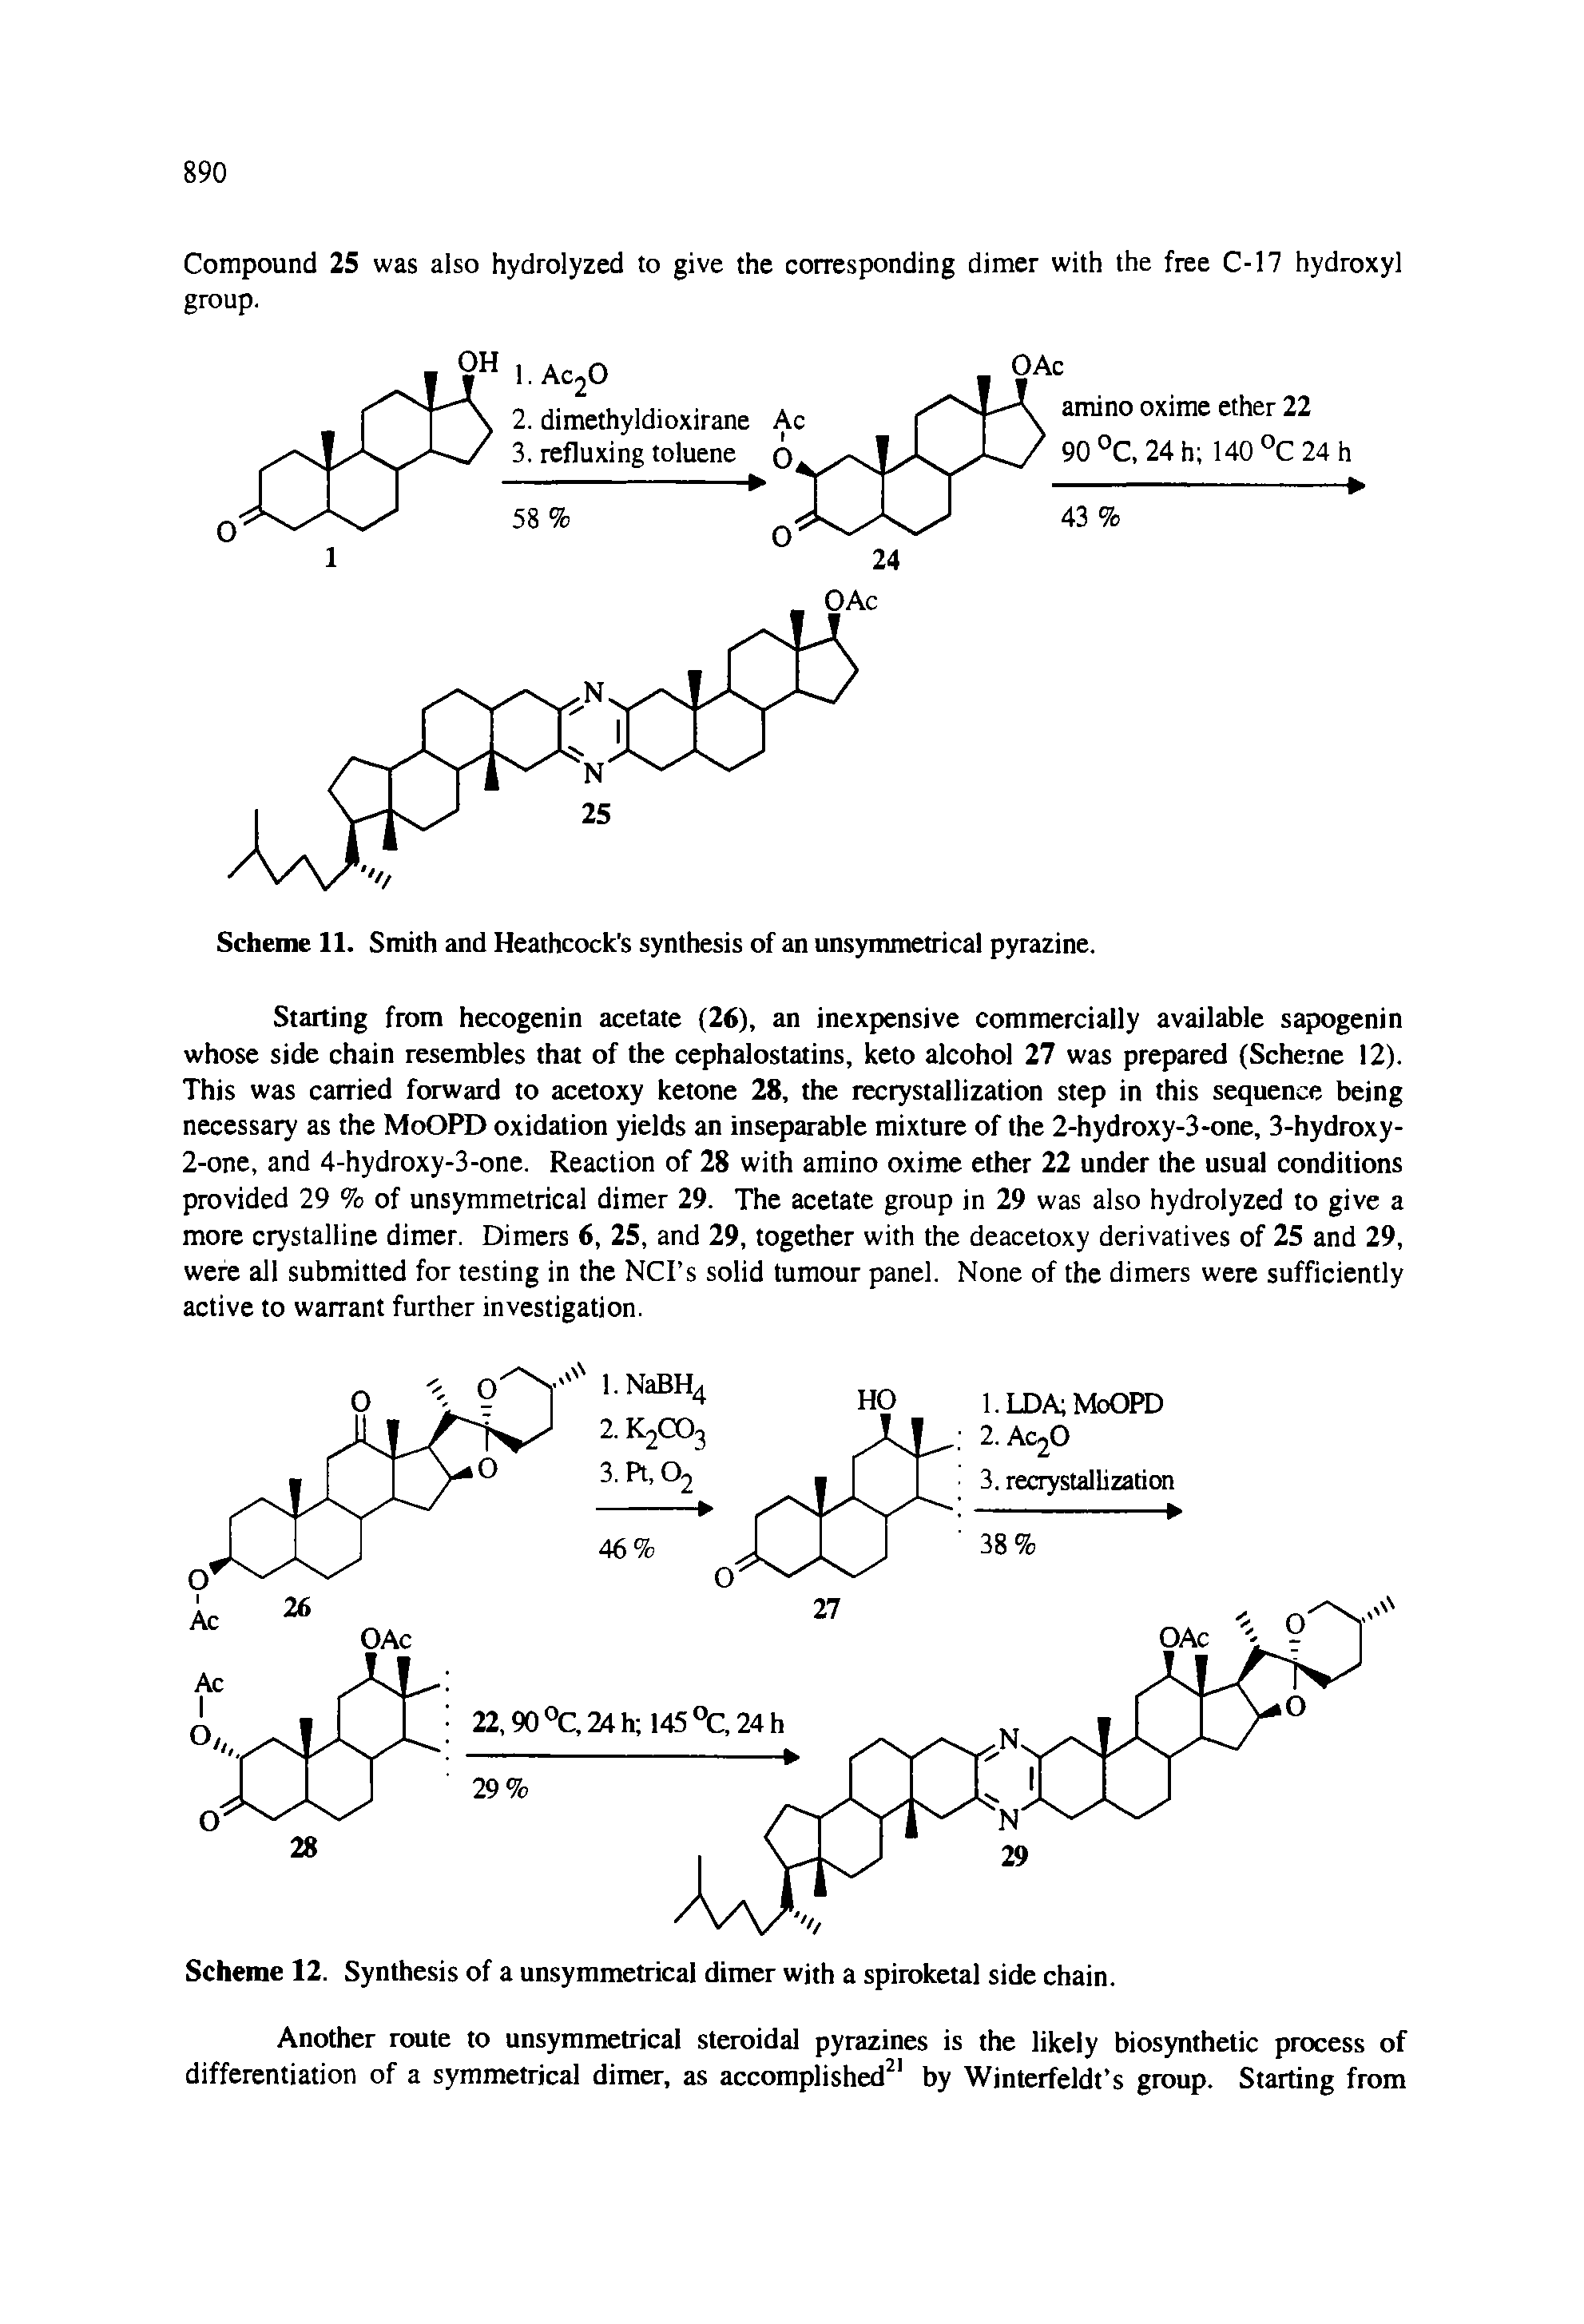 Scheme 11. Smith and Heathcock s synthesis of an unsymmetrical pyrazine.